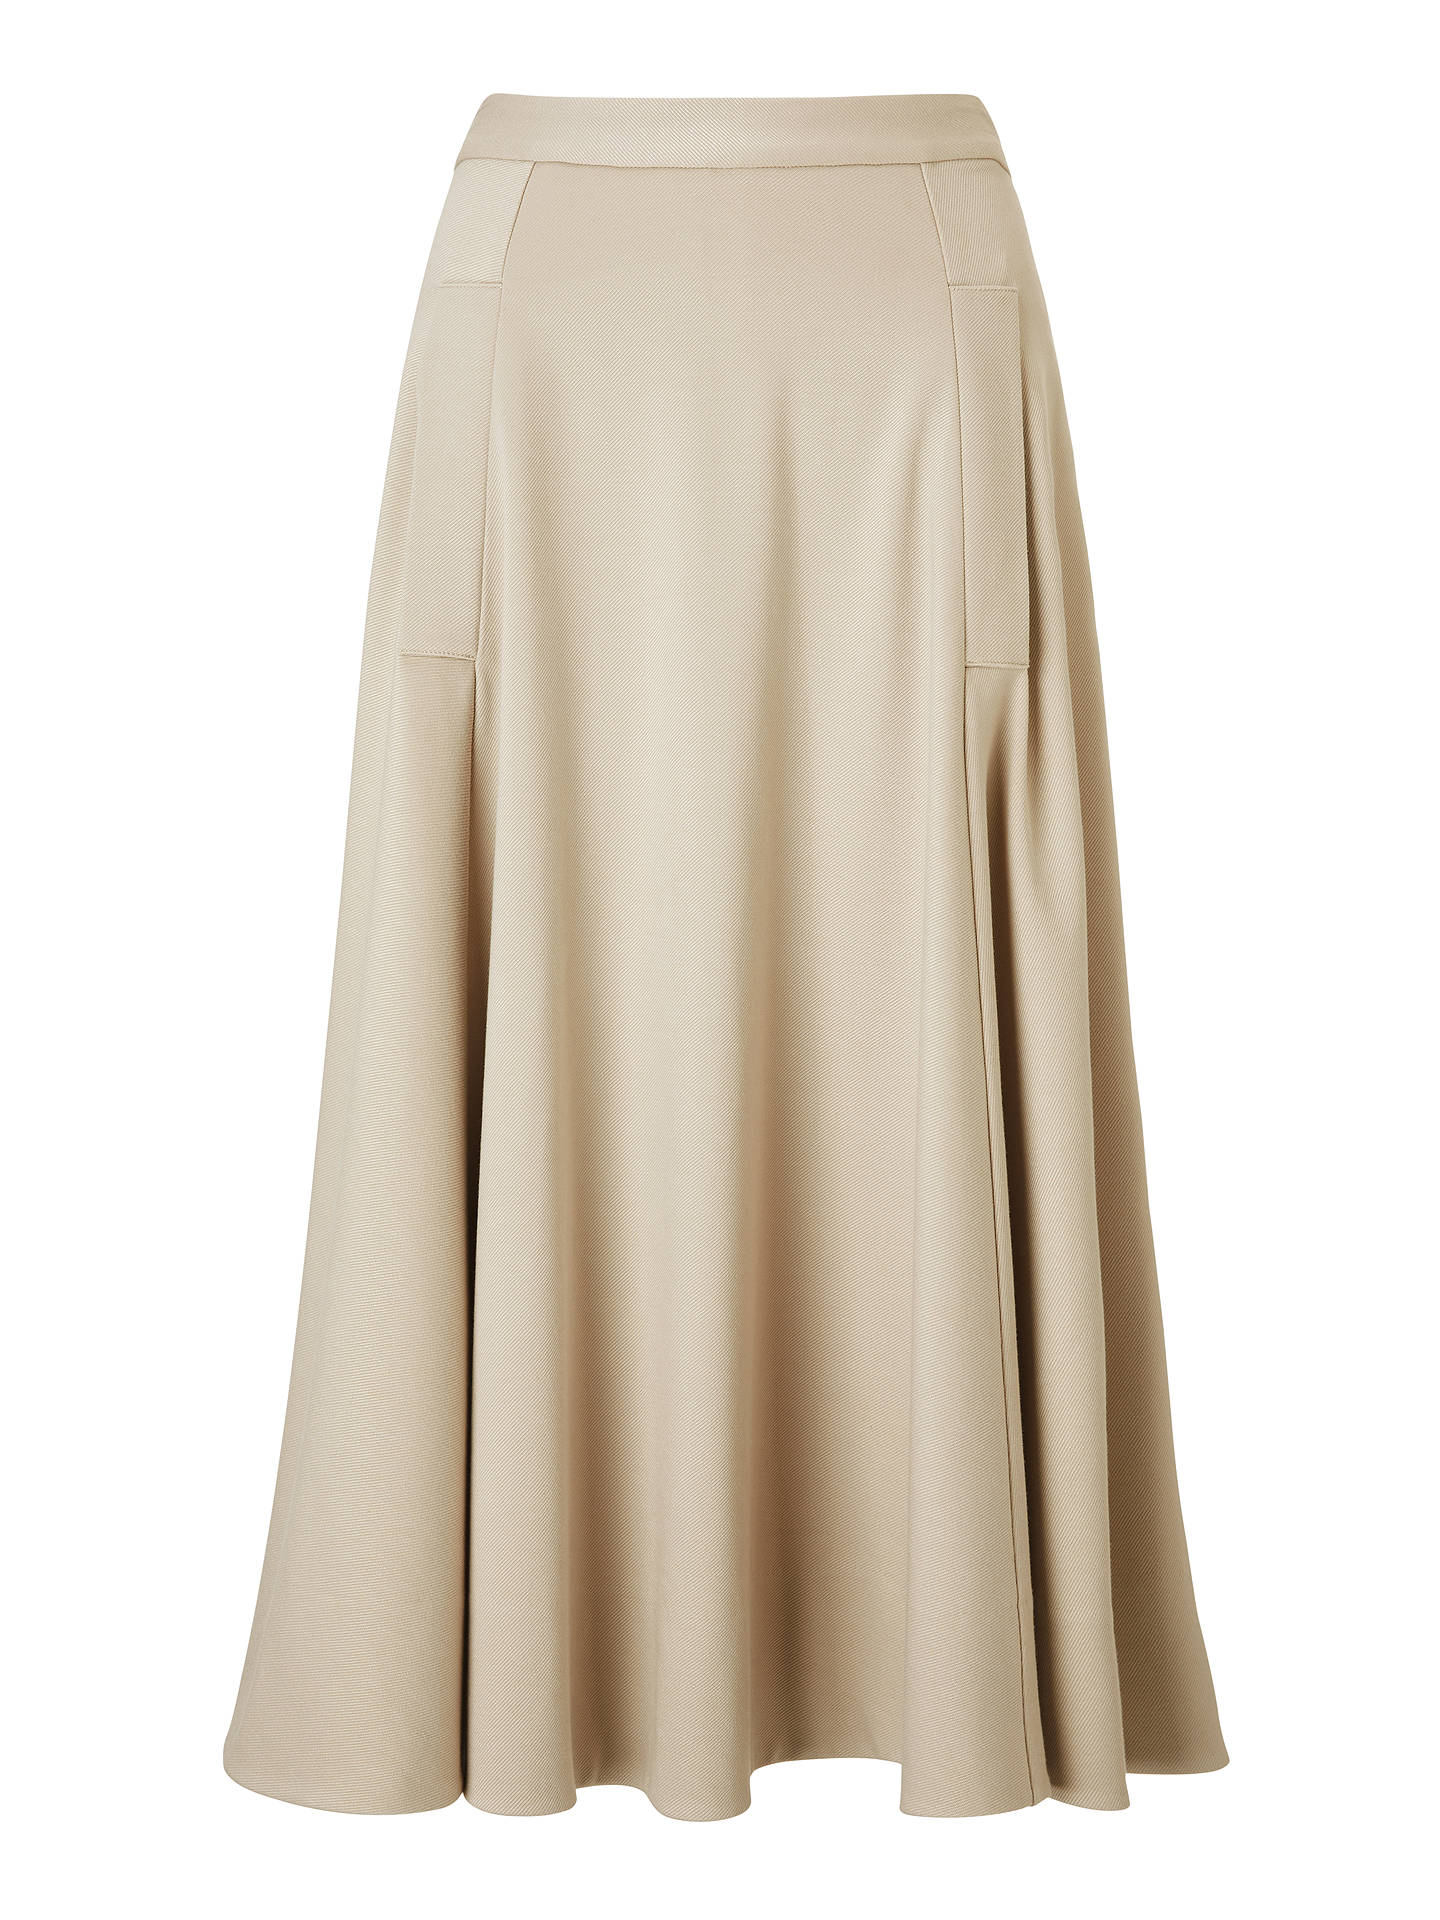 Buy Winser London Midi Full Circle Skirt, Stone, 14 Online at johnlewis.com